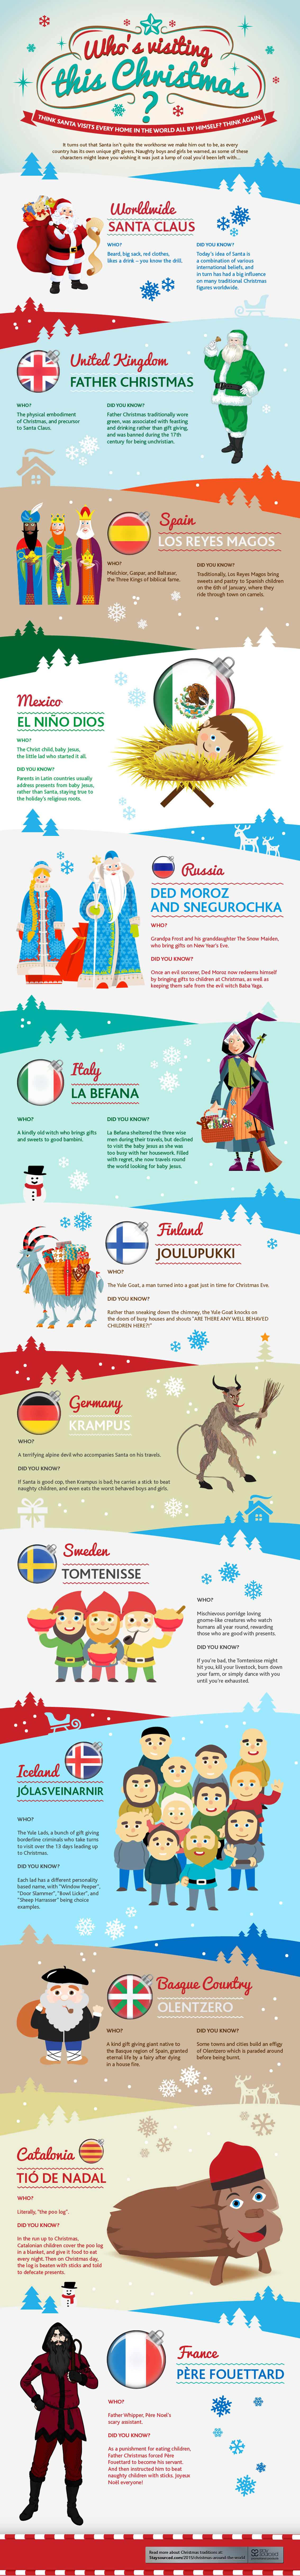 Santas from Around the World Infographic